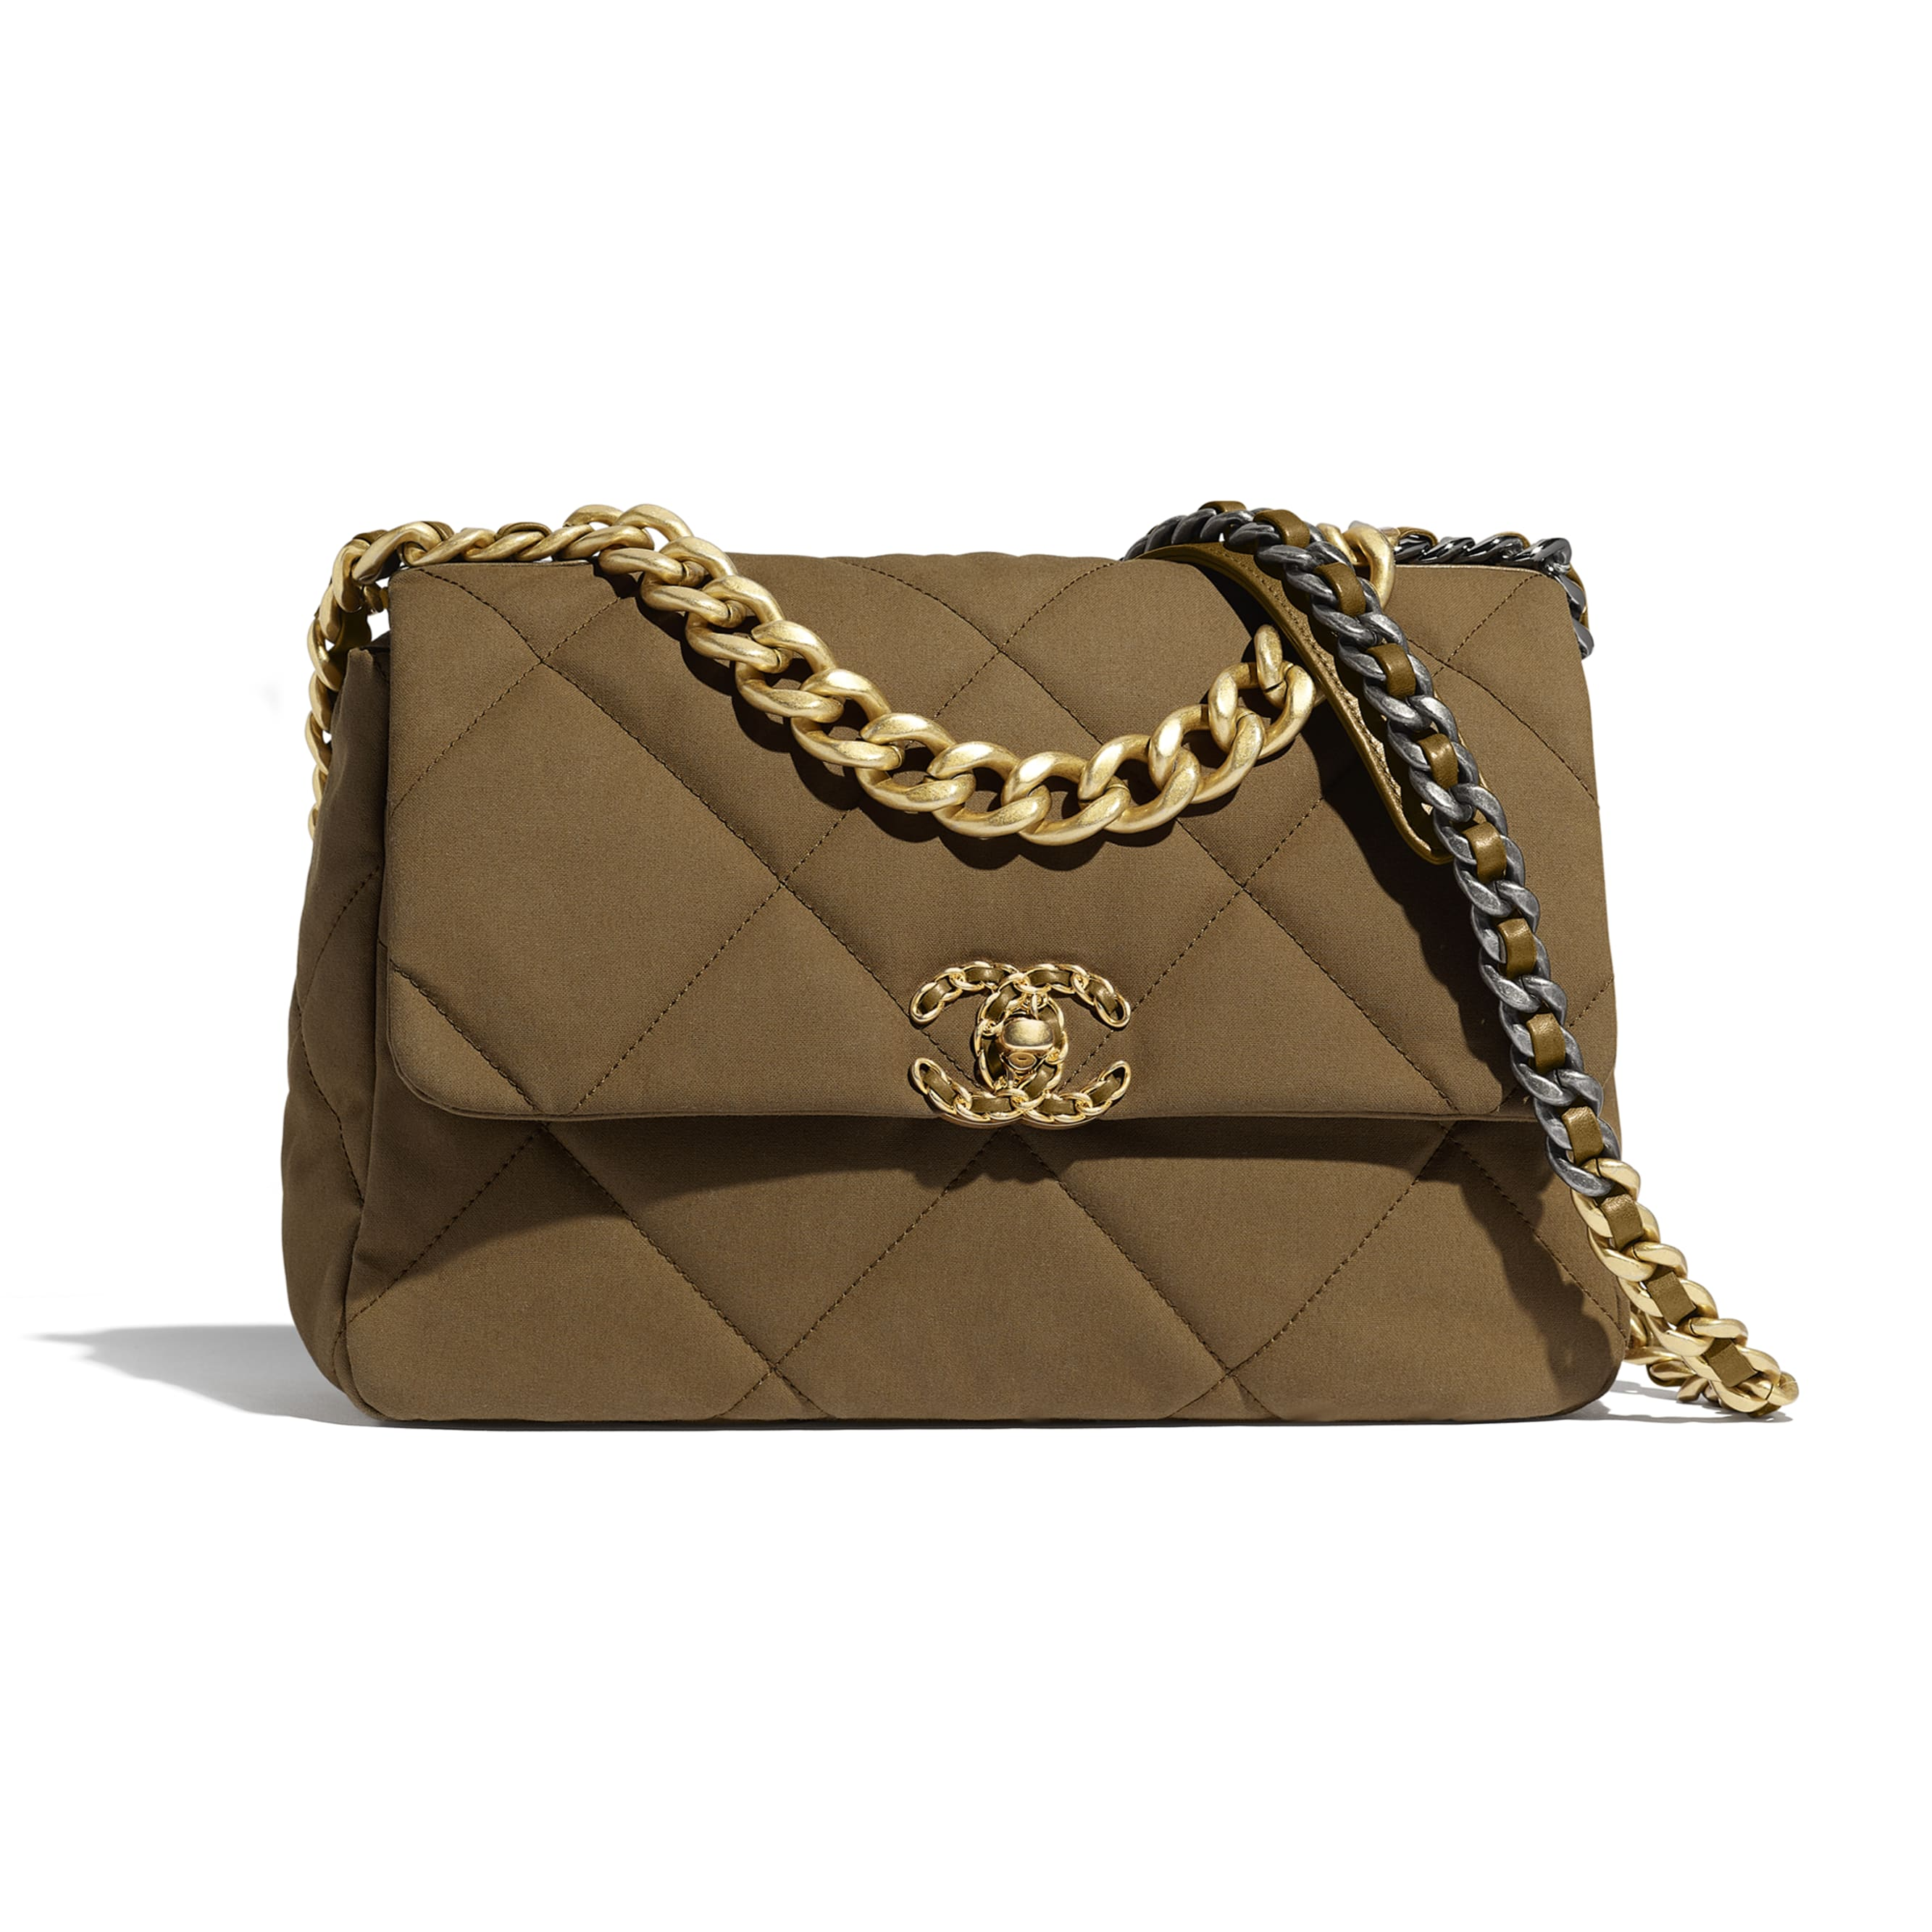 CHANEL 19 Large Flap Bag - Bronze - Cotton Canvas, Calfskin, Gold-Tone, Silver-Tone & Ruthenium-Finish Metal - CHANEL - Default view - see standard sized version